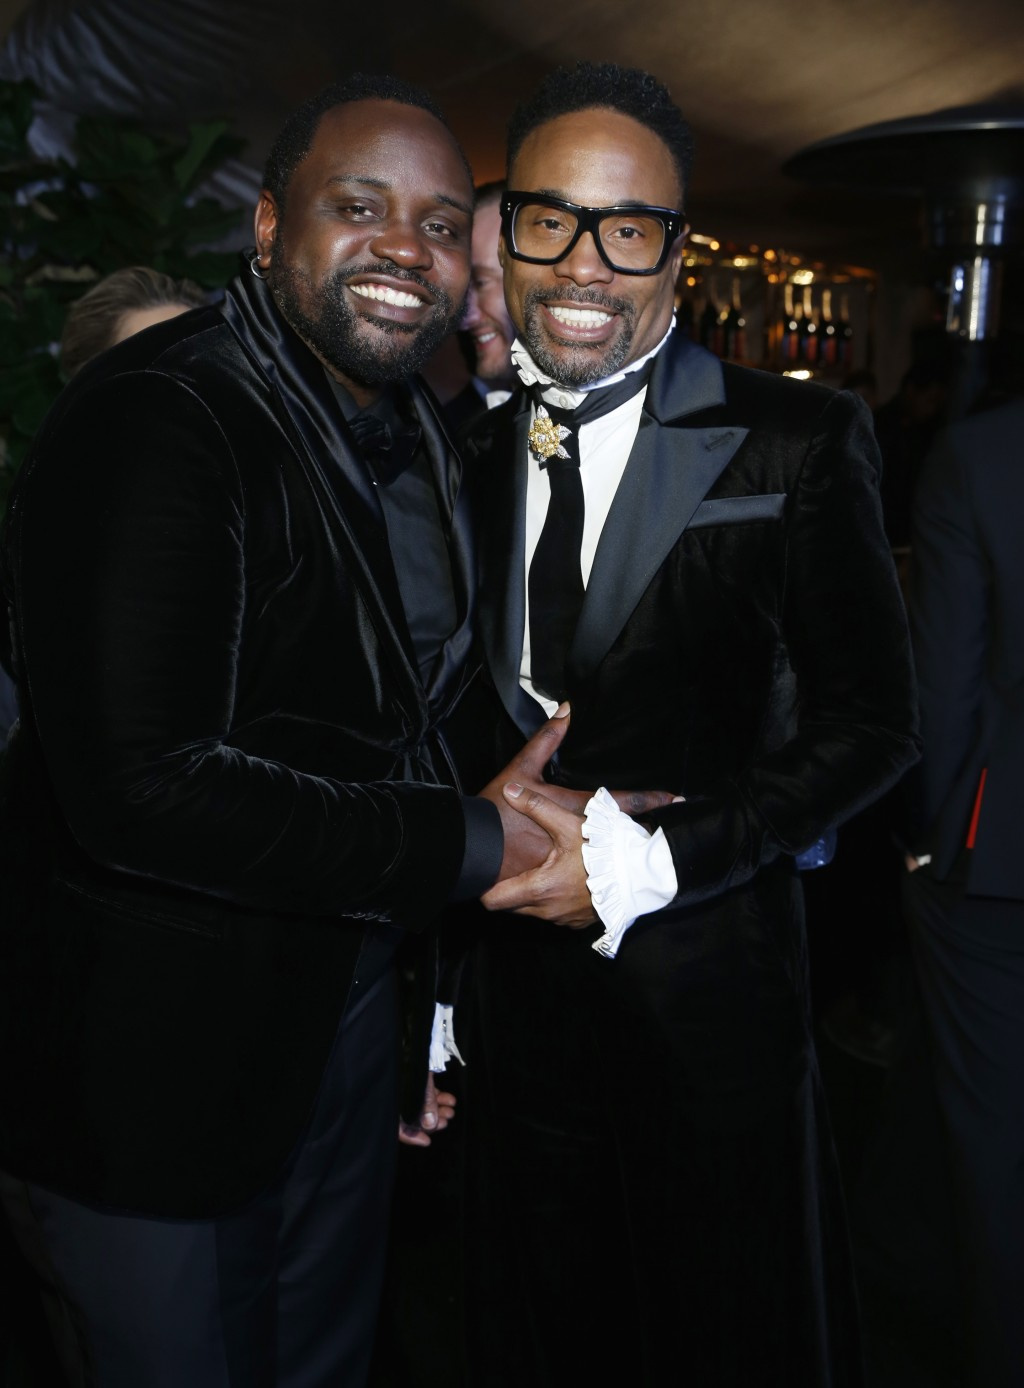 Brian Tyree Henry, left, and Billy Porter attend the Governors Ball after the Oscars on Sunday, Feb. 24, 2019, at the Dolby Theatre in Los Angeles. (P